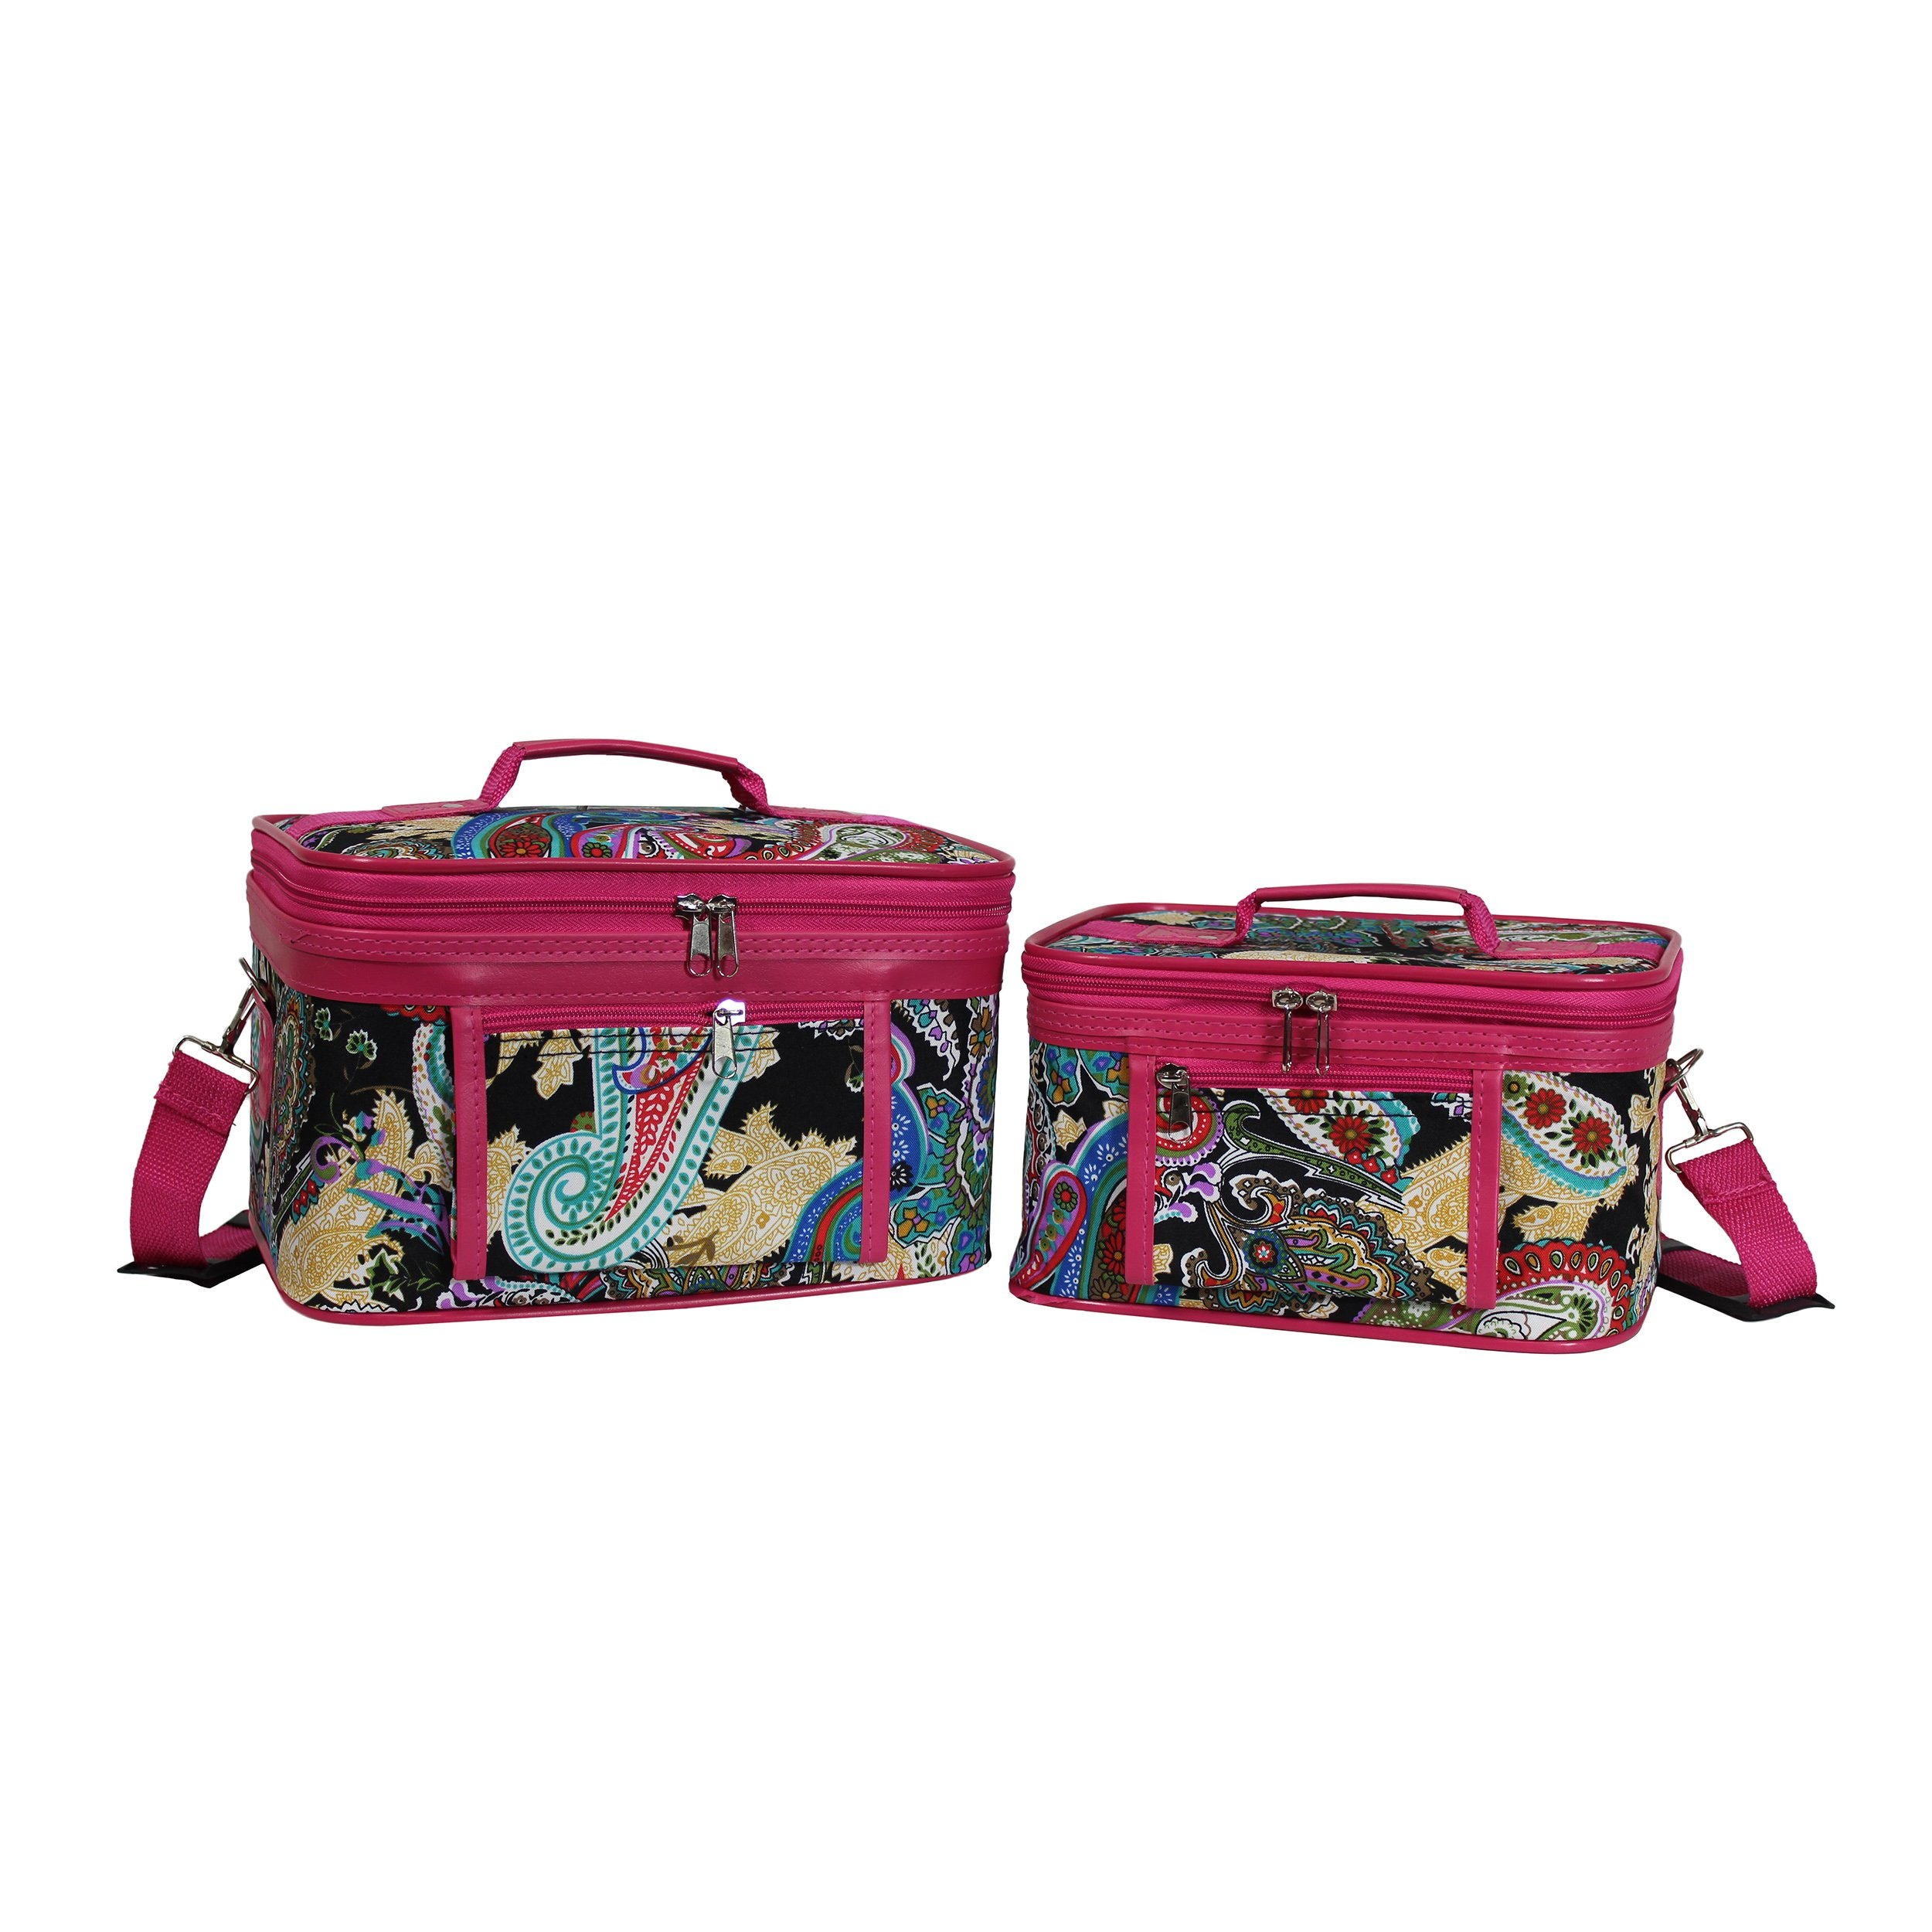 World Traveler Women's 2-Piece Cosmetic Case Set, Pink Trim Multi Paisley